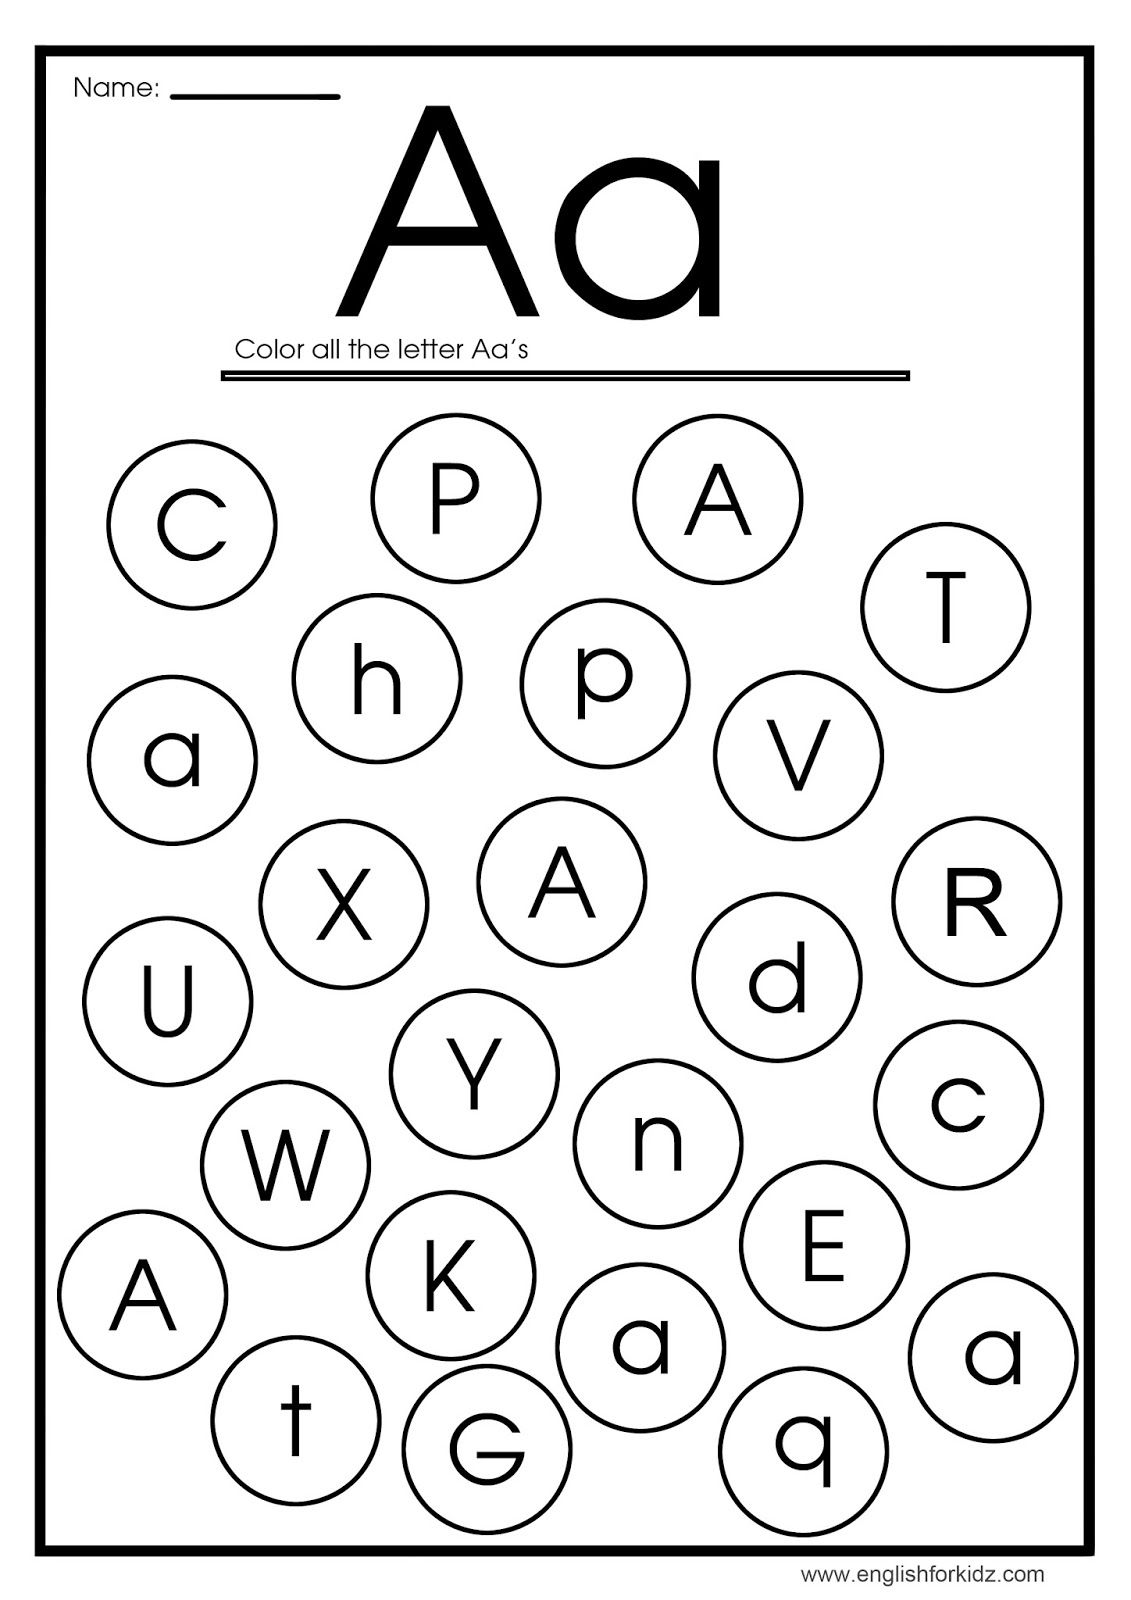 Find Letter A Worksheet In